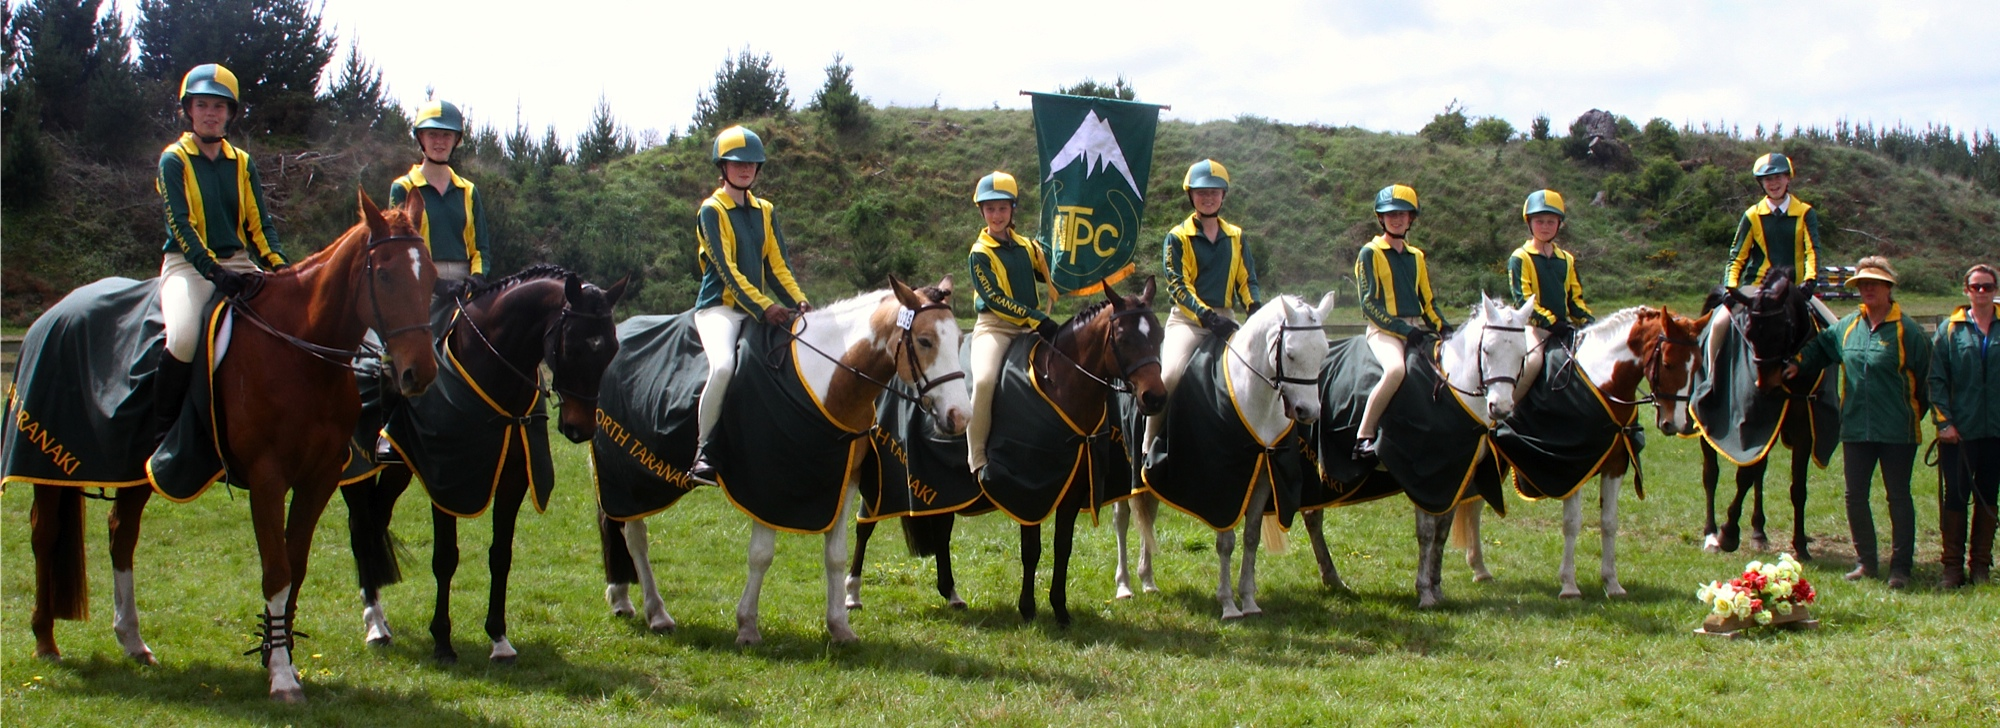 TARANAKI SUCCESS: Representing North Taranaki the Huntaways team of C Herbert (left), V Berrie, A Spurway, S Megchelse, S Henderson, O Thompson-Booth, M Henderson, P Grayling and Coaches: H Marshall and L Quay won second place at the North Island Show Hunter championships. PHOTO: Supplied